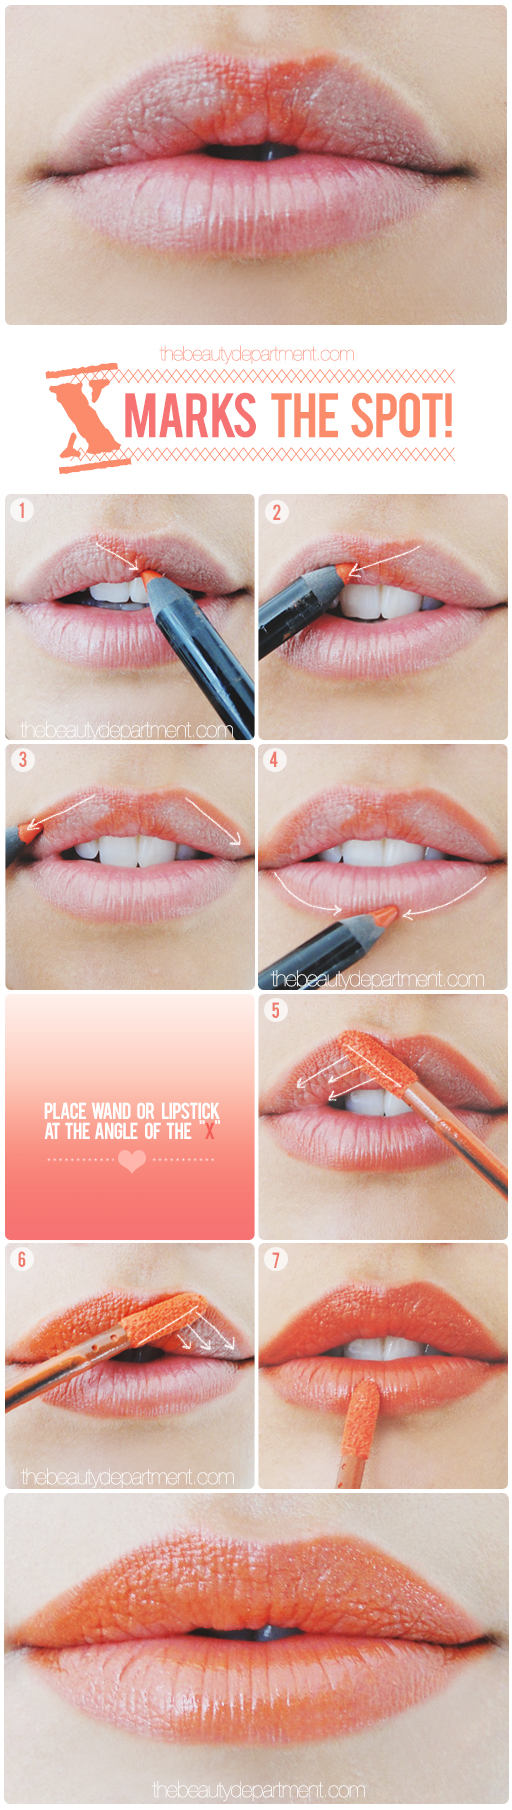 The Beauty Department: Your Daily Dose of Pretty. - A LITTLE LIP TRICK